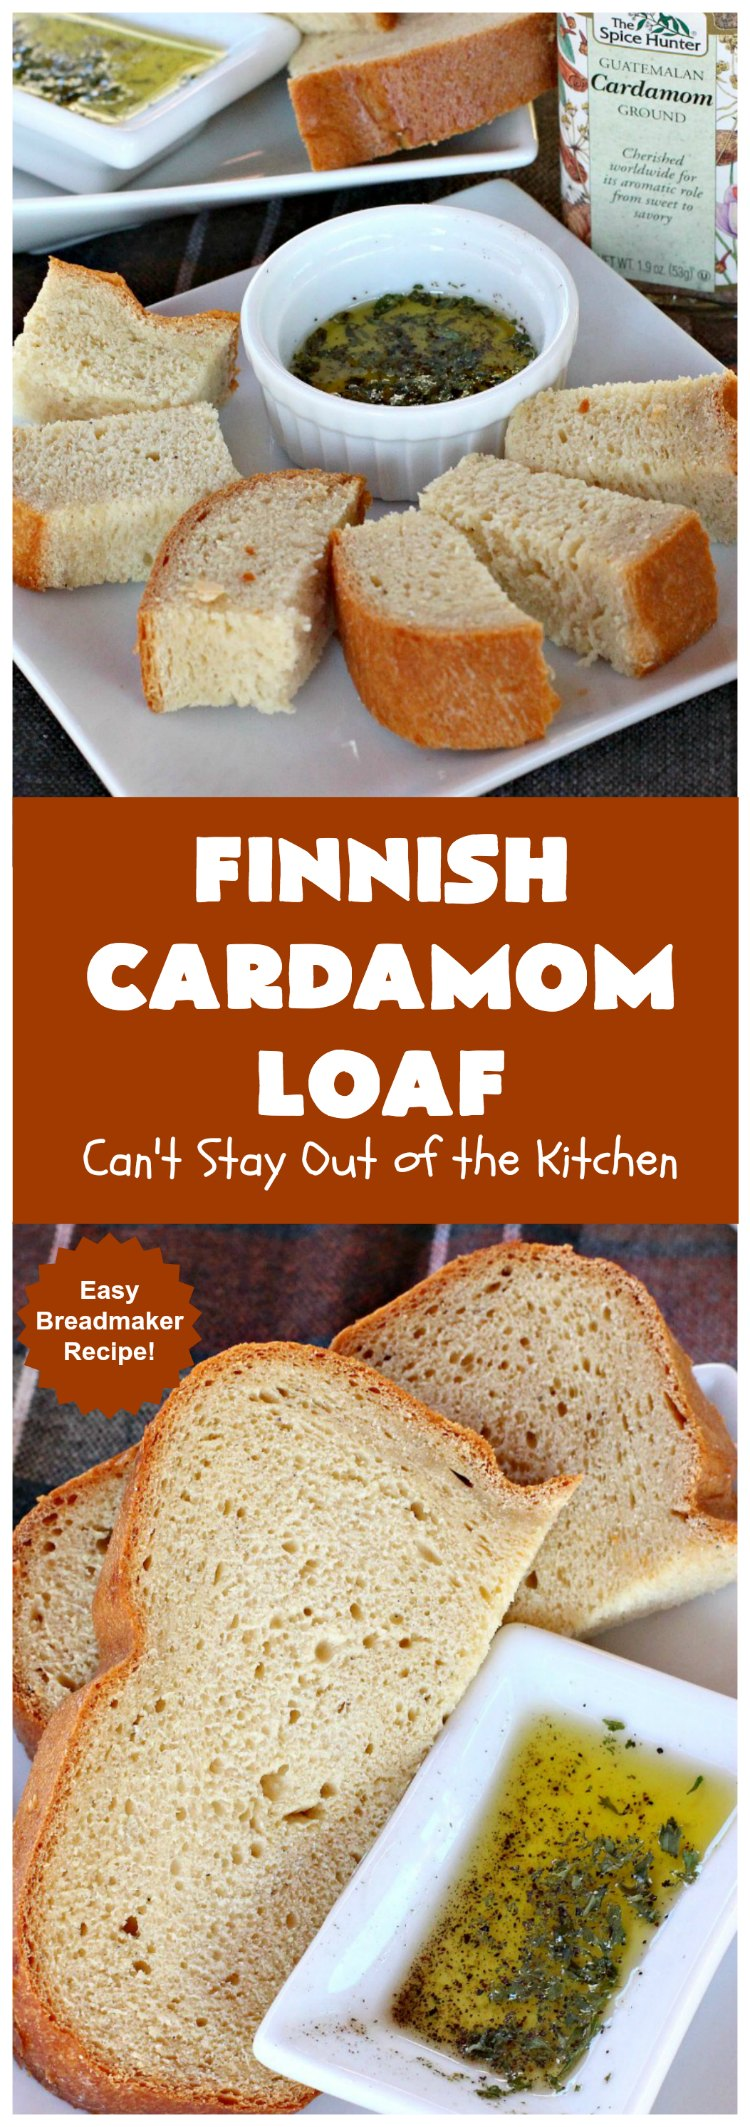 Finnish Cardamom Loaf | Can't Stay Out of the Kitchen | this fantastic home-baked #bread is so easy since it's made in the #breadmaker. Perfect for #breakfast or as a side for soup, chili or other comfort food meals. #cardamom #Finnish #Finland #FinnishCardamomLoaf #HomemadeBread